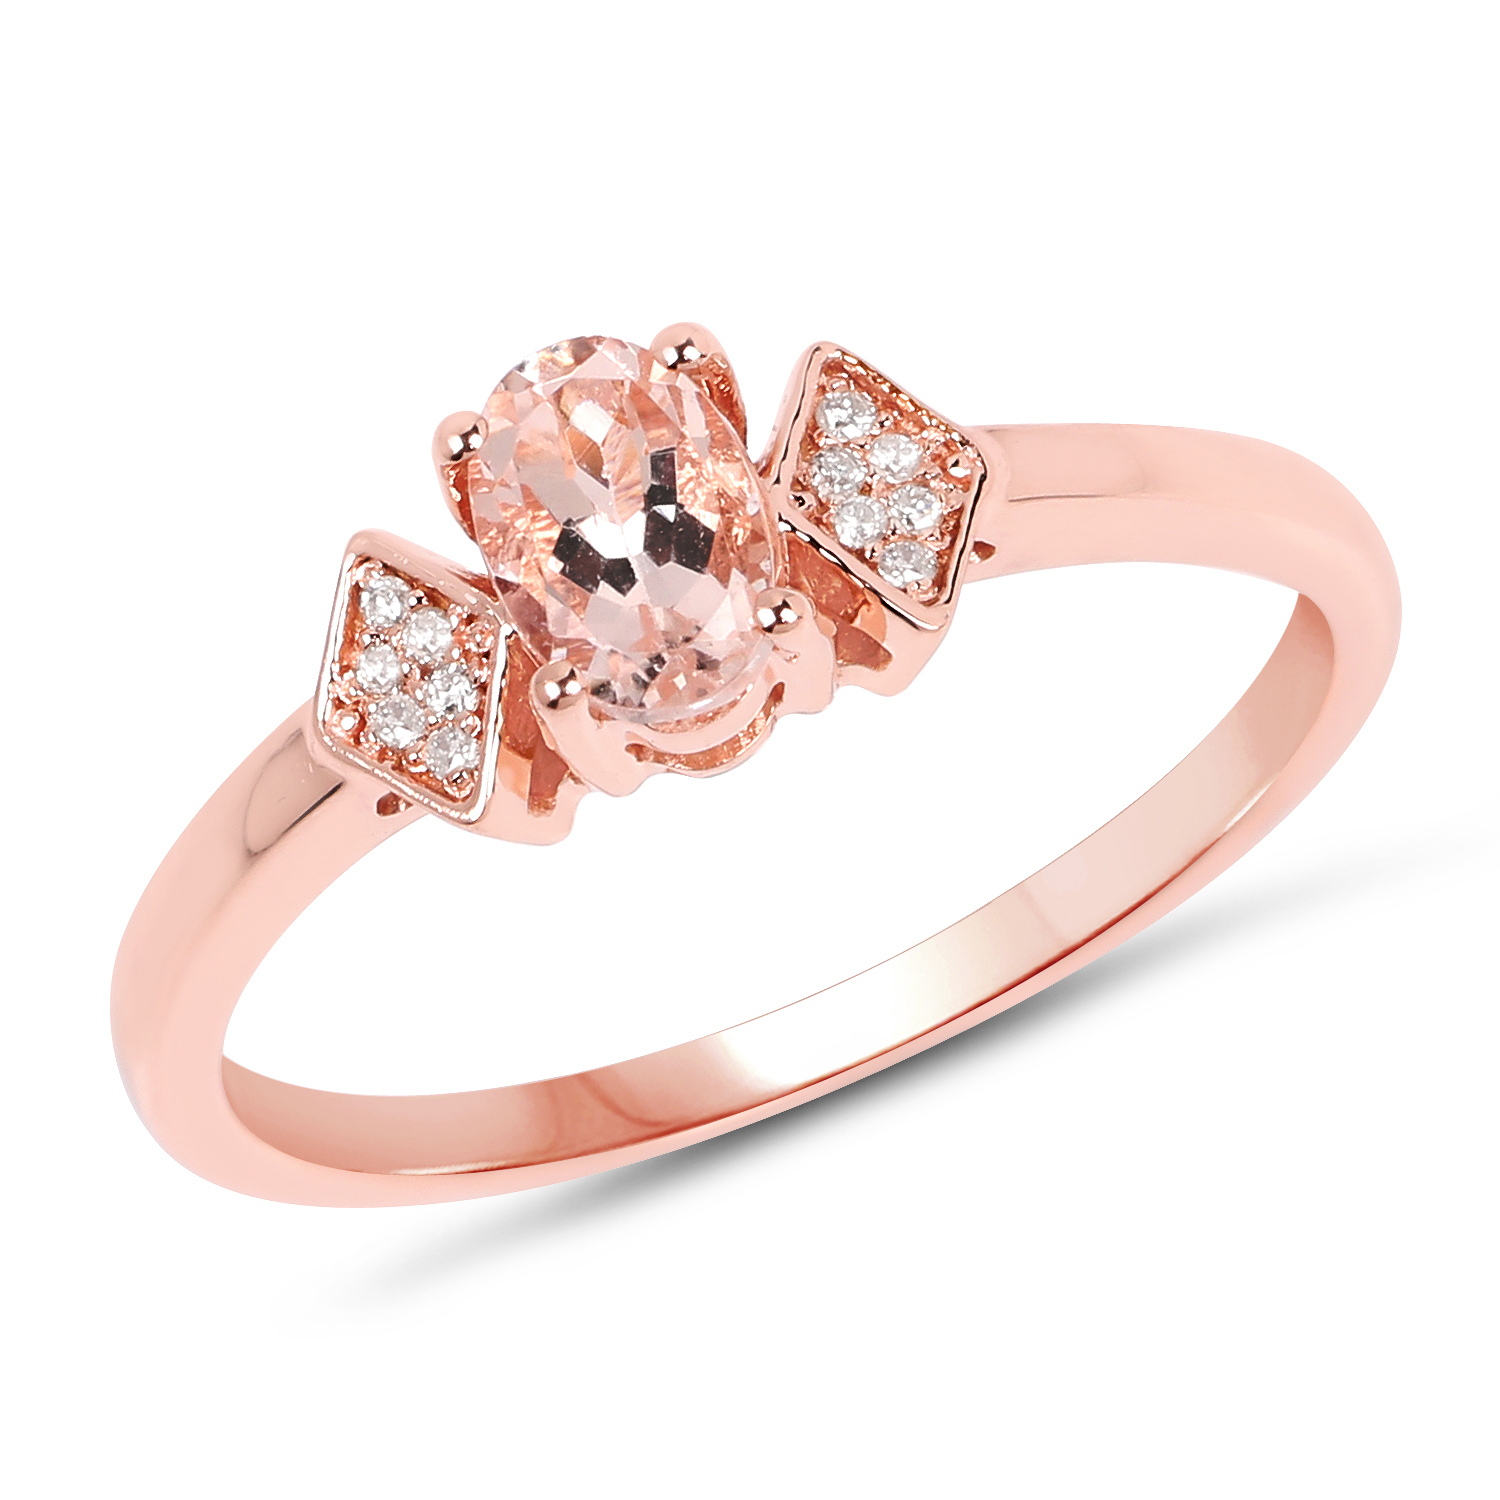 Genuine Oval Morganite and Diamond Ring in 14k Rose Gold - Size 6.00